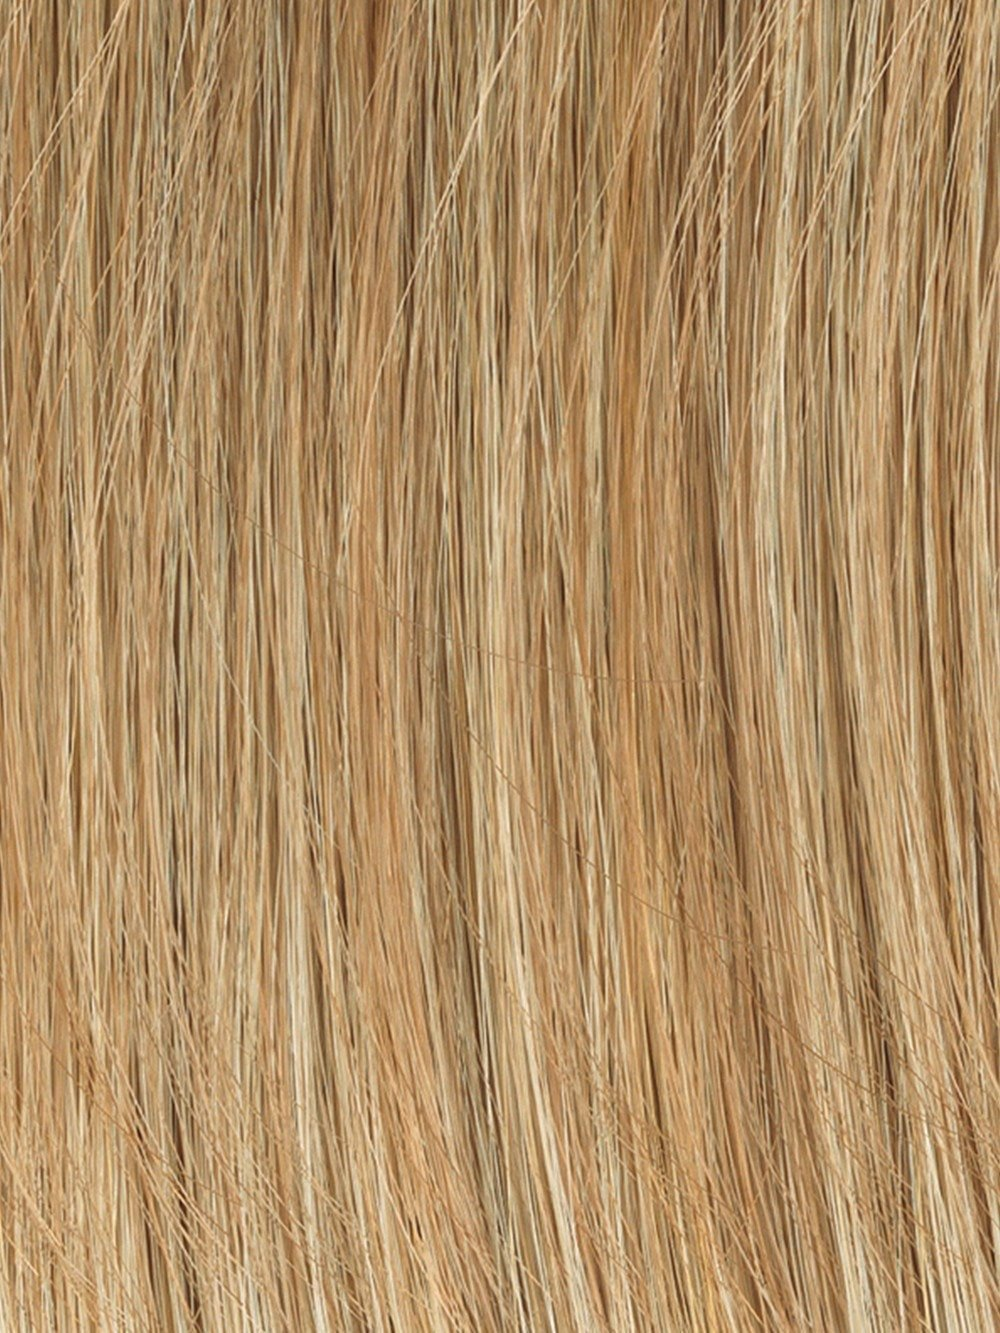 Medium Blonde | Golden blonde or dark blonde with salon highlights